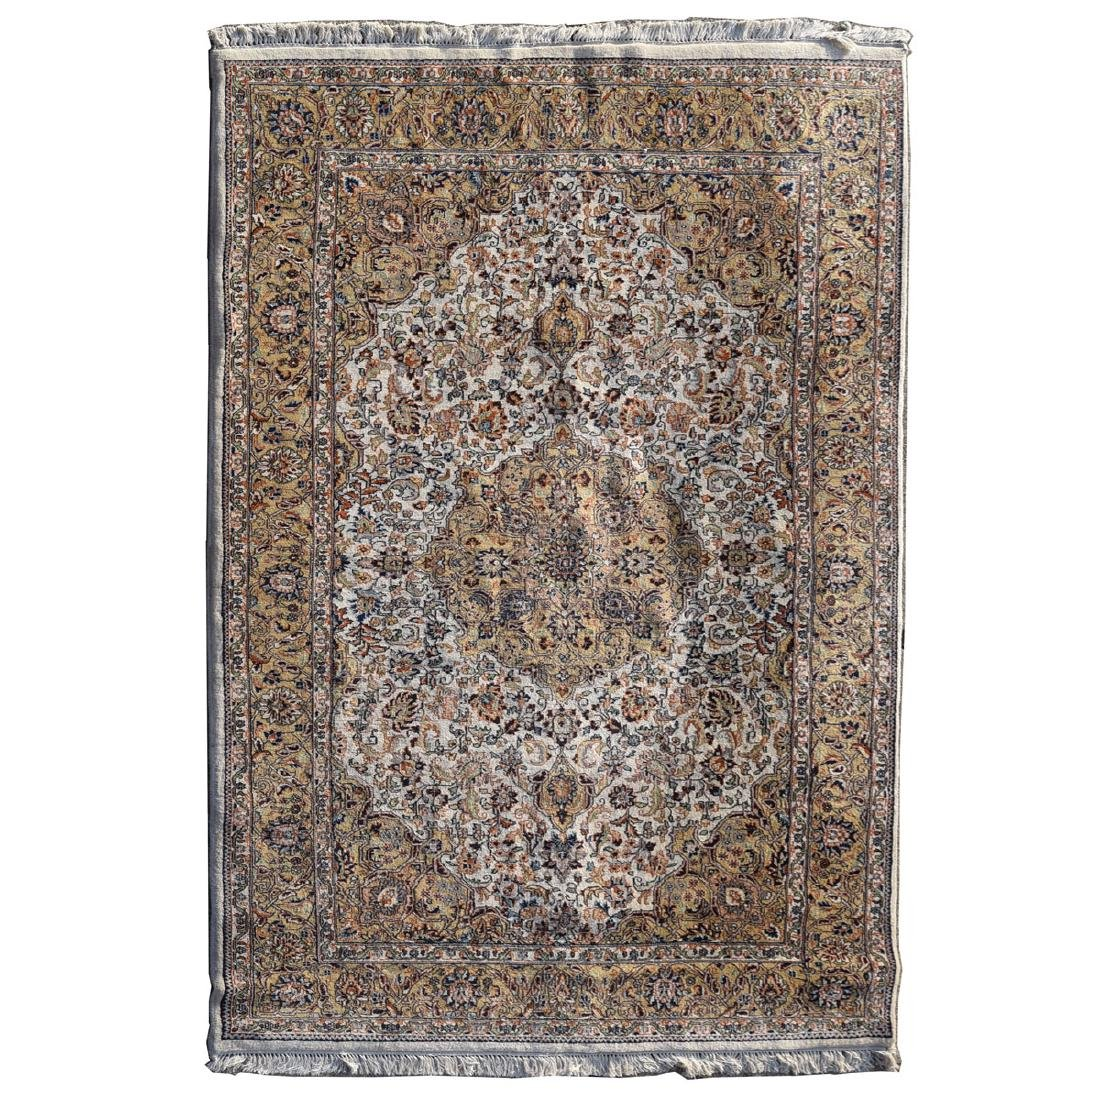 "Indian Style Rug in Light Brown Tones (78"" x 117"")"